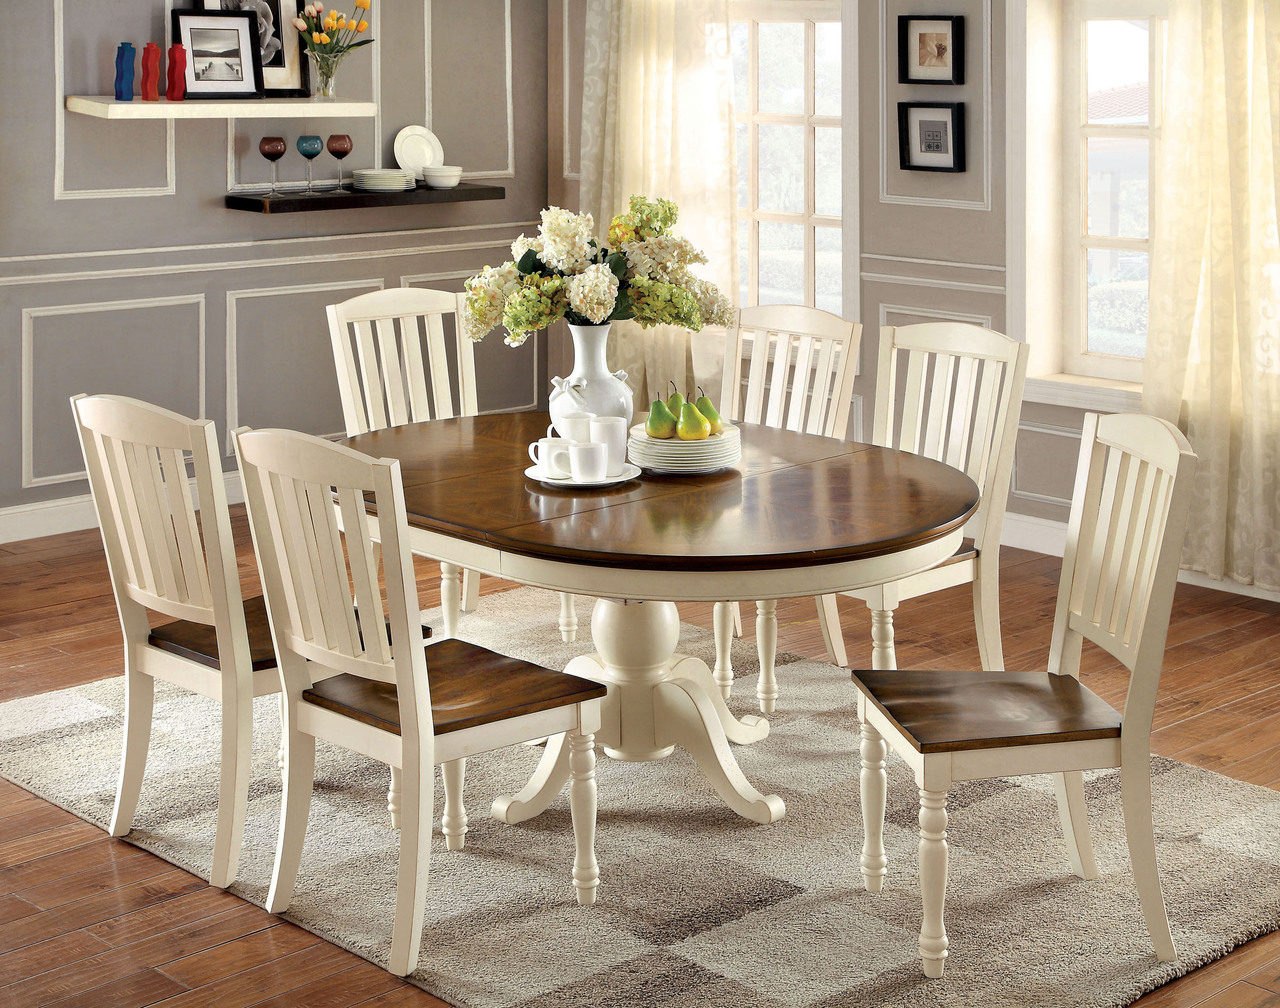 Remarkable 66 Sutton Oval Vintage White Cherry Dining Table Set Theyellowbook Wood Chair Design Ideas Theyellowbookinfo